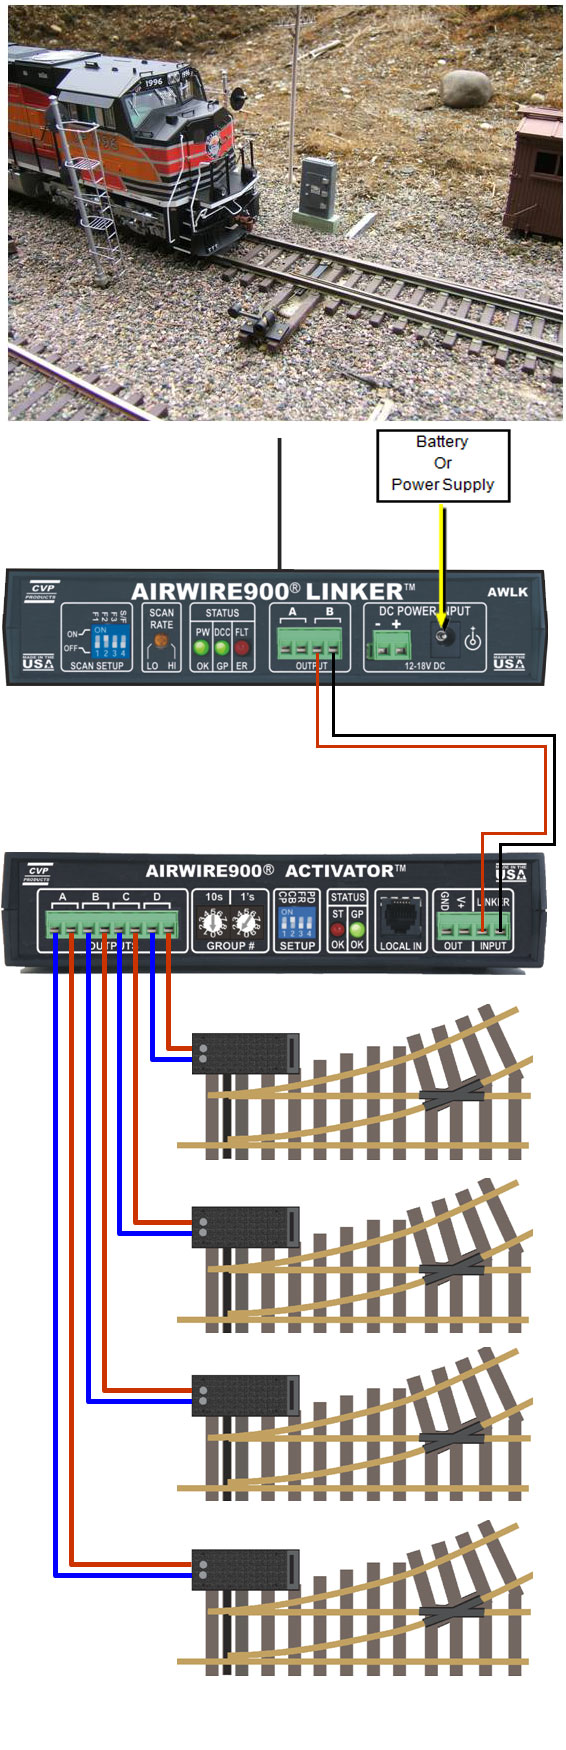 CVP's AirWire900 The Linker and The Activator